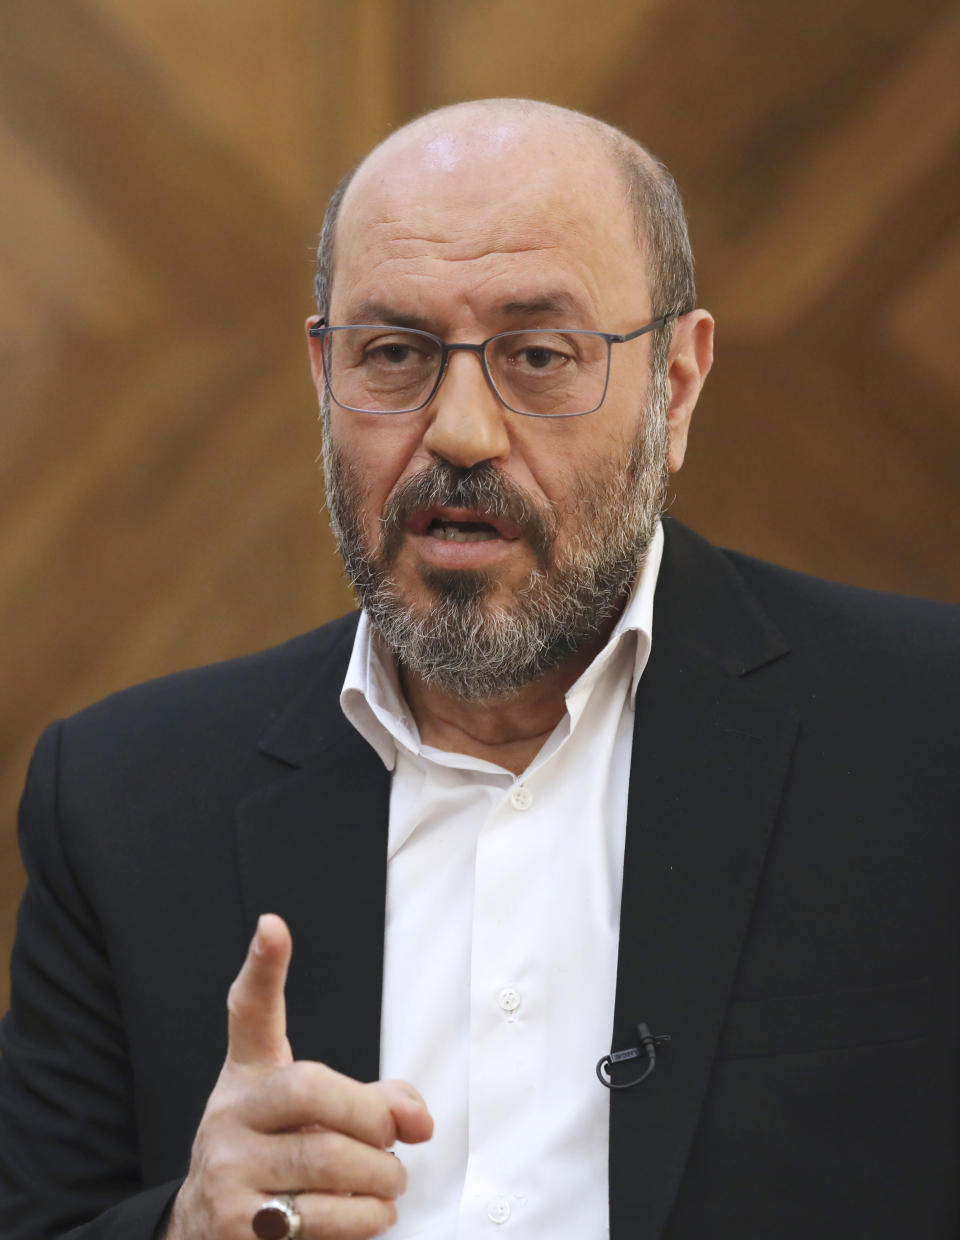 """Gen. Hossein Dehghan, a military advisor to Iran's Supreme Leader Ayatollah Ali Khamenei, speaks during an interview with The Associated Press in Tehran, Iran, Wednesday, Nov. 18, 2020. Dehghan, who is a possible 2021 presidential candidate, warned that any American attack on the Islamic Republic could set off a """"full-fledged war"""" in the Mideast in the waning days of the Trump administration. (AP Photo/Vahid Salemi)"""